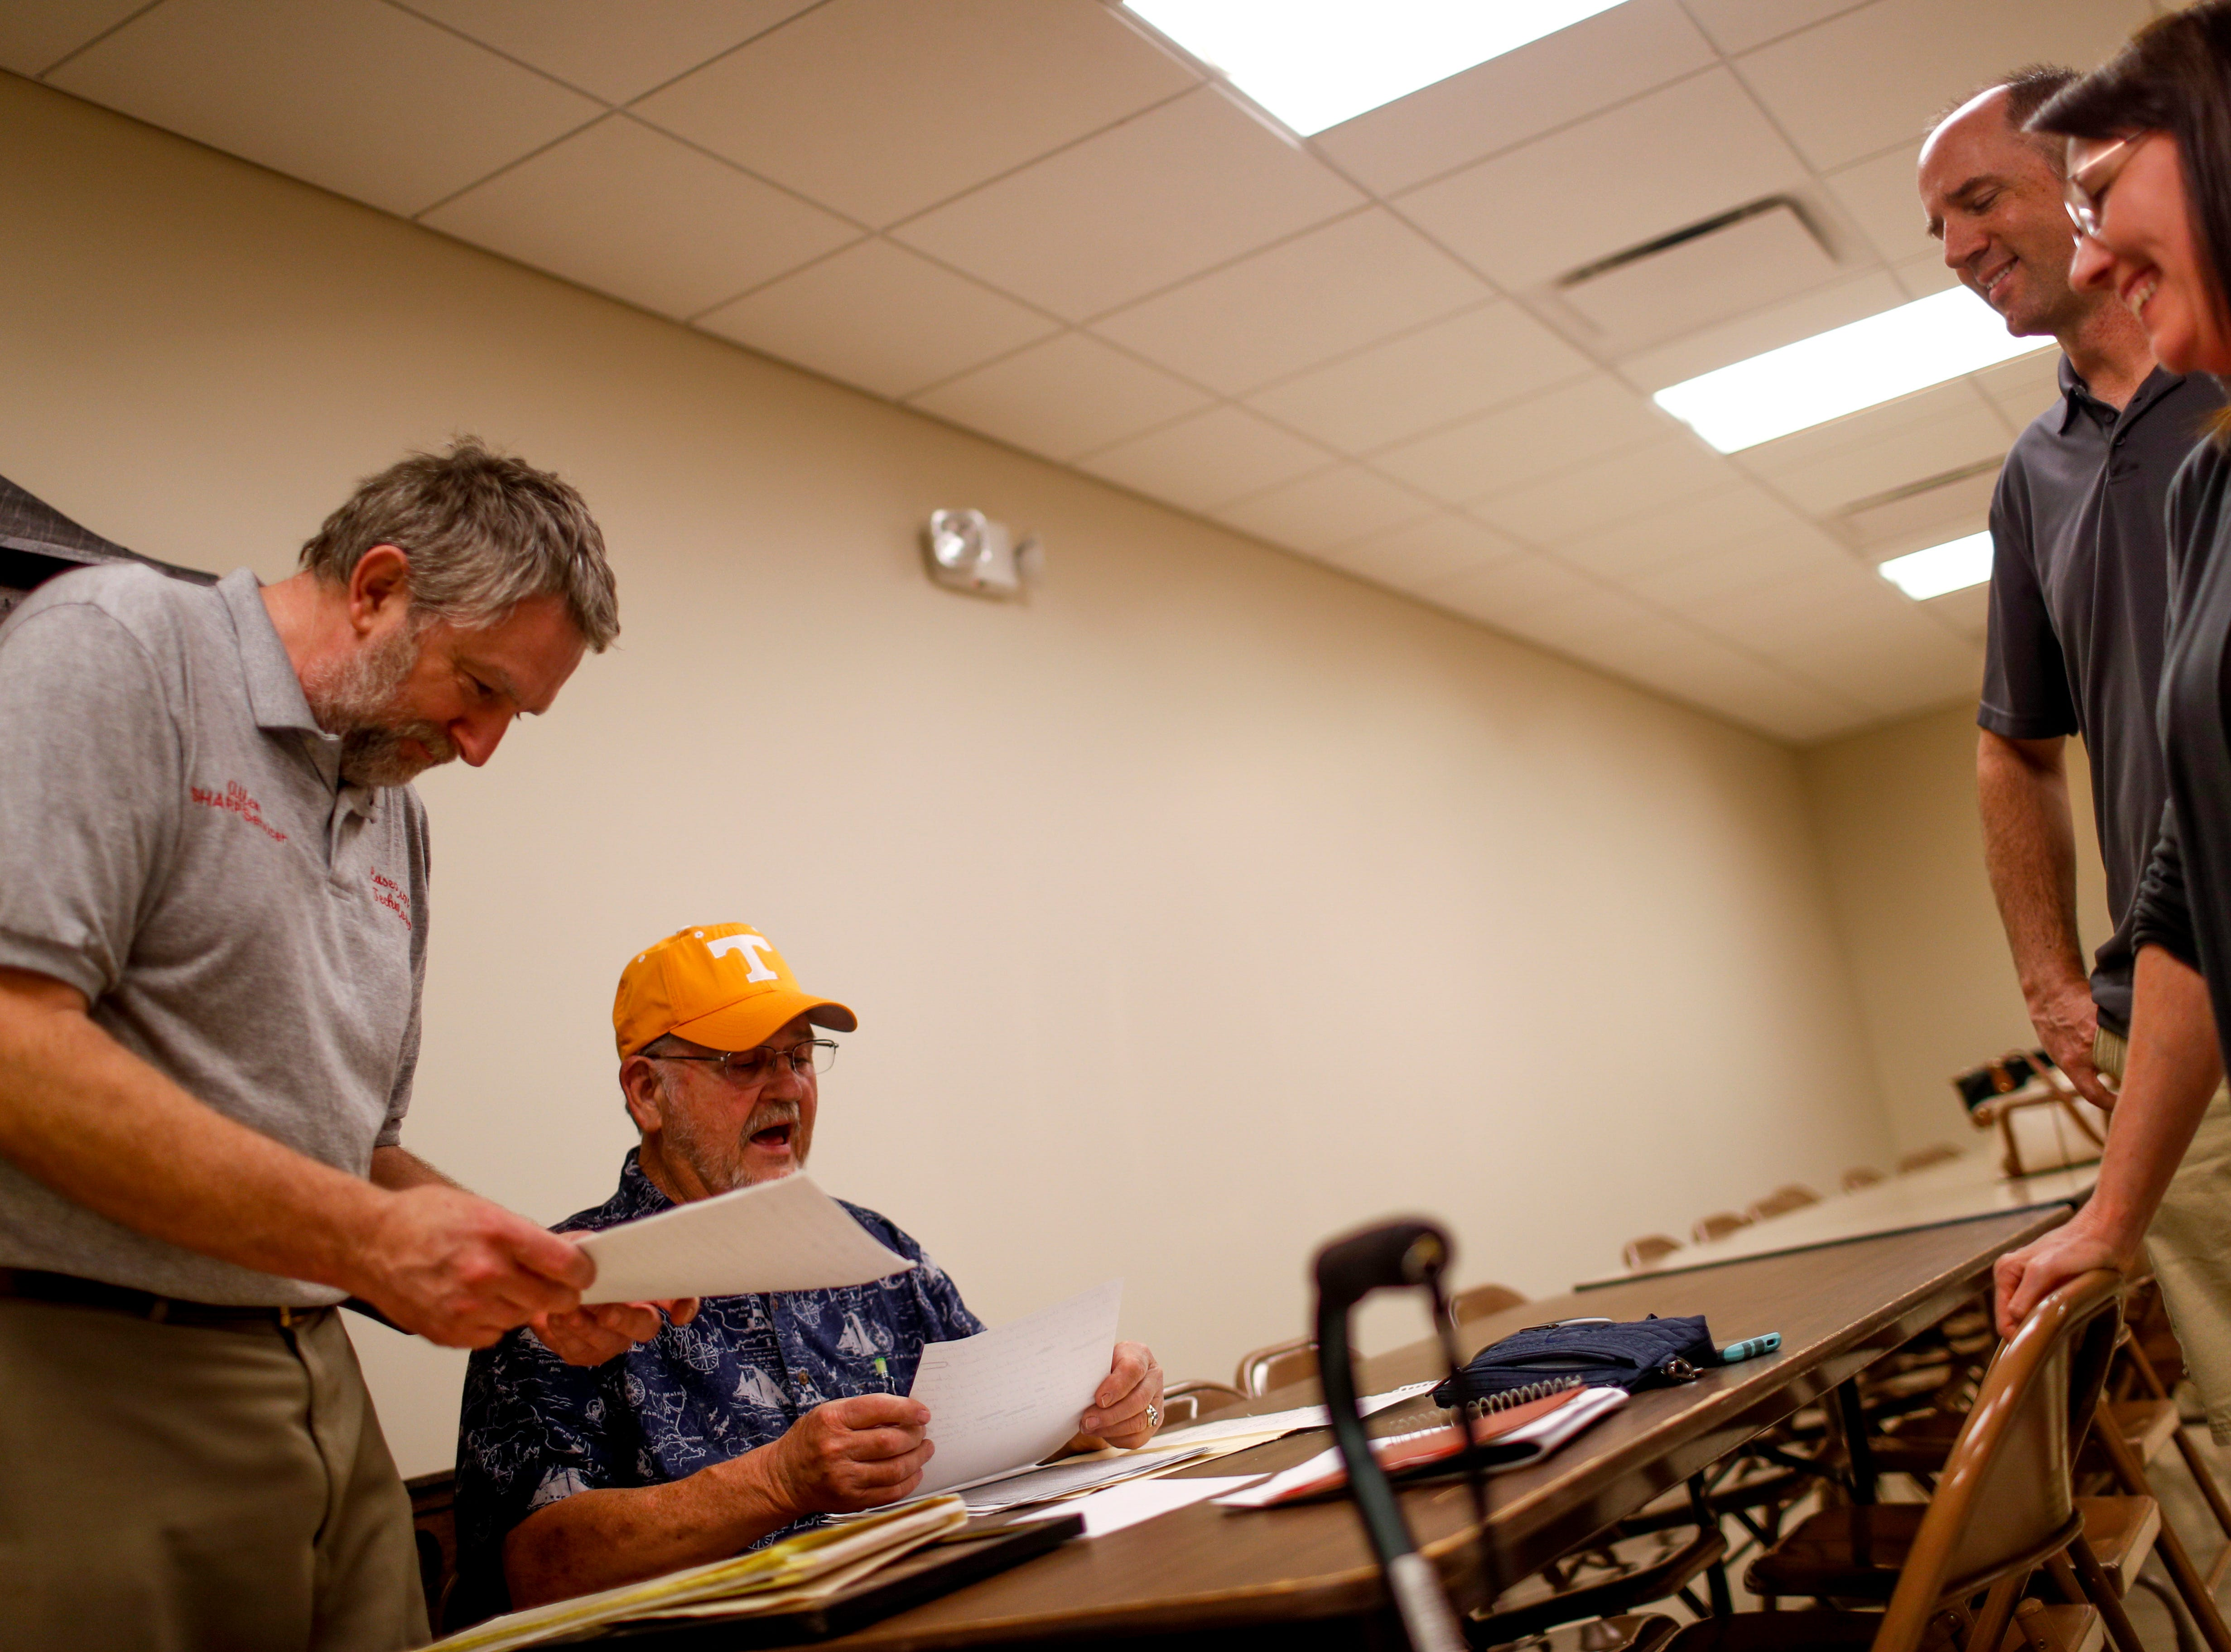 Members go through old documents with Bobby Haskins, center, at Odd Fellow Lodge in Clarksville, Tenn., on Tuesday, April 23, 2019.